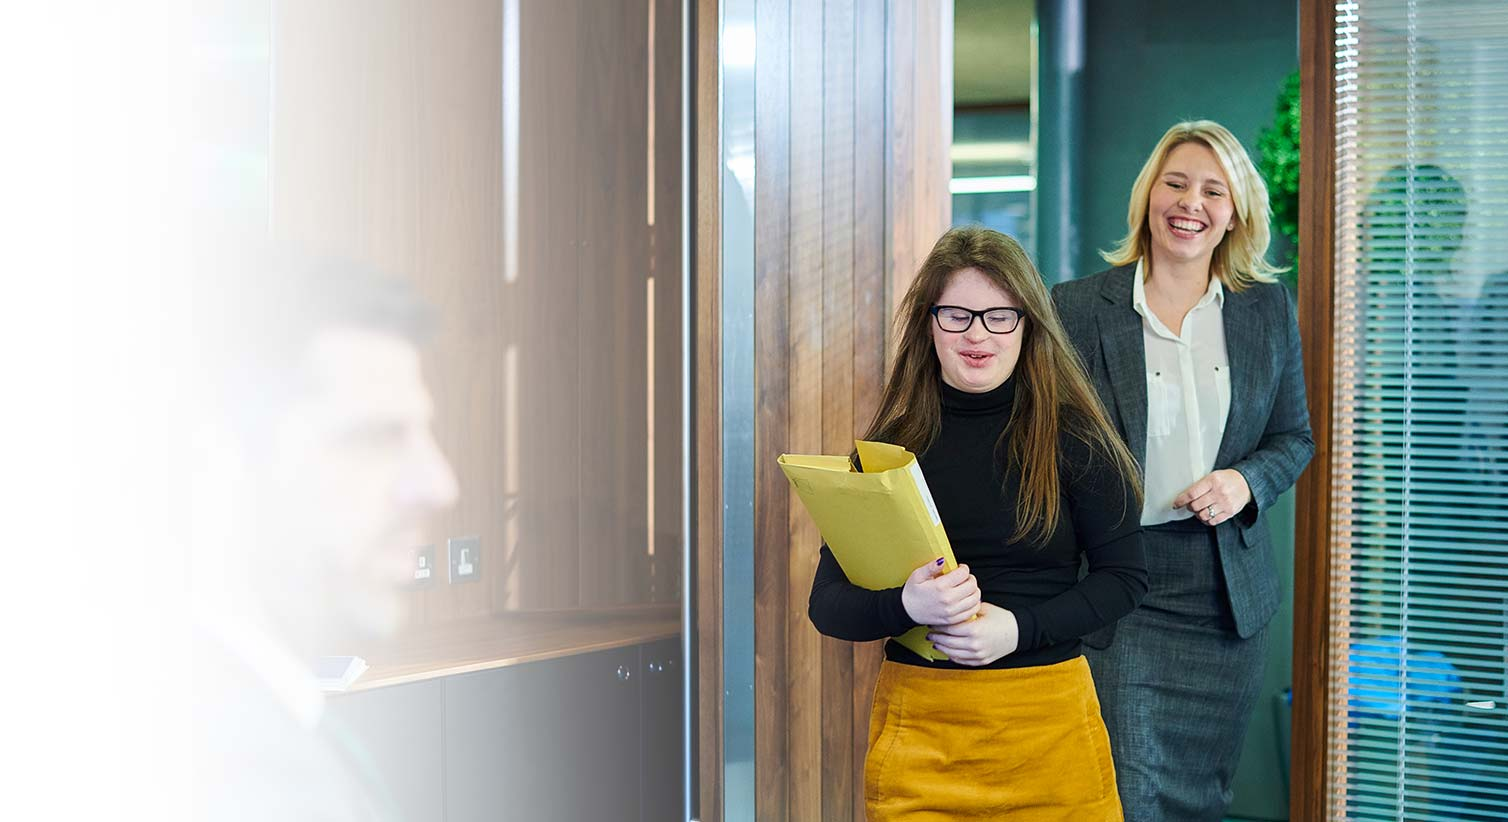 Young woman with a down syndrome leaving the office